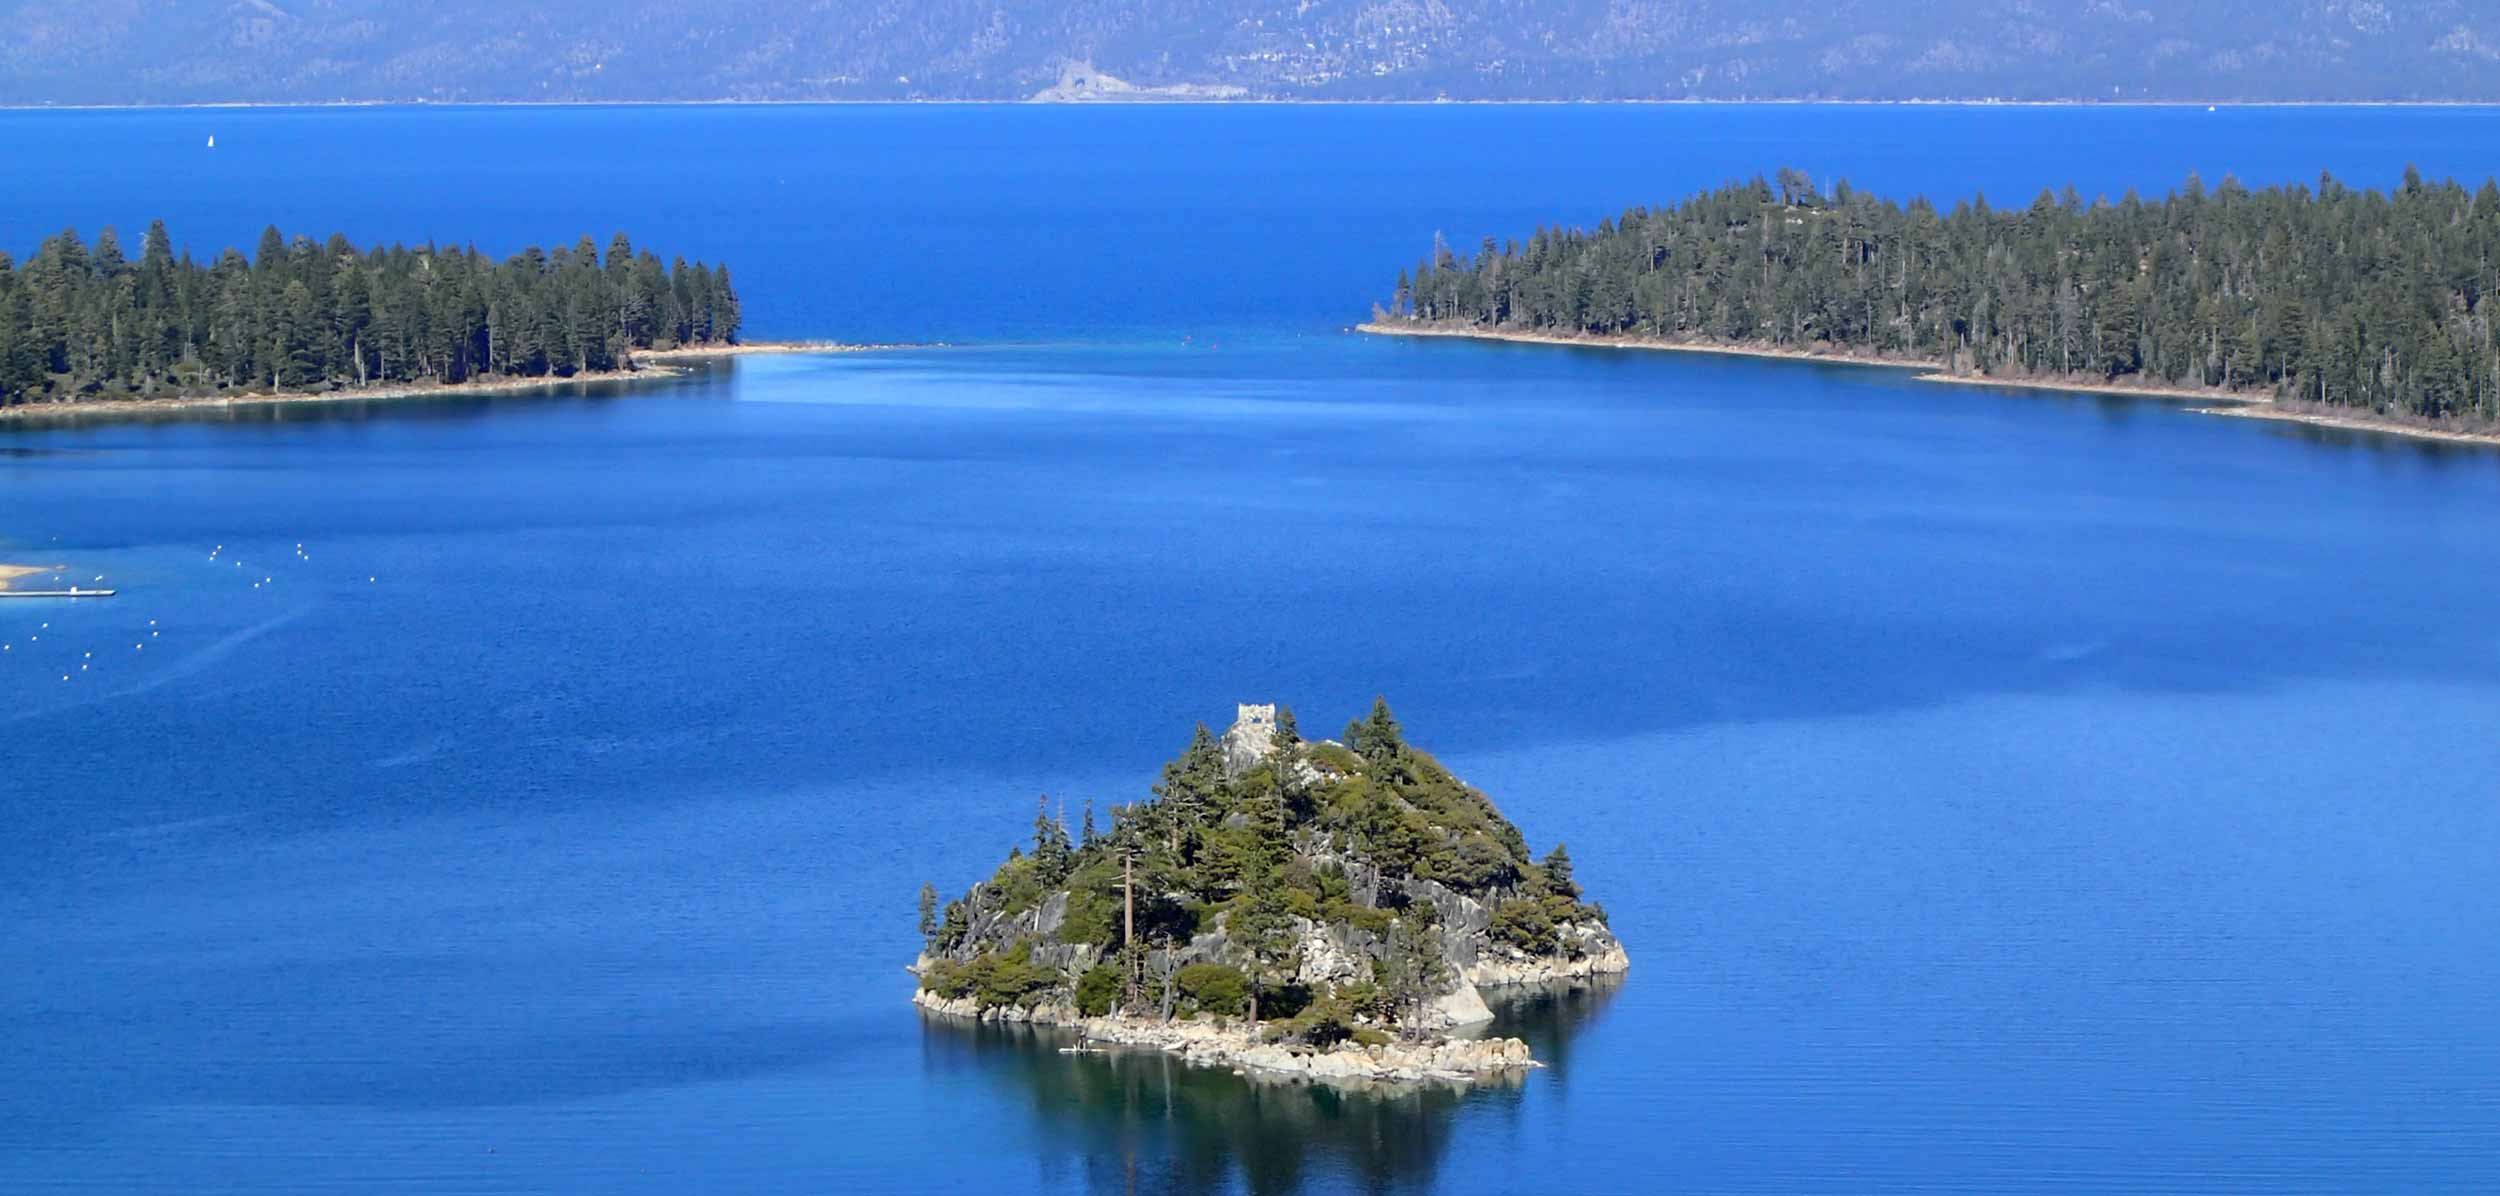 A view of Lake Tahoe's Emerald Bay and iconic blue water. (Brant Allen/UC Davis, Tahoe Environmental Research Center)